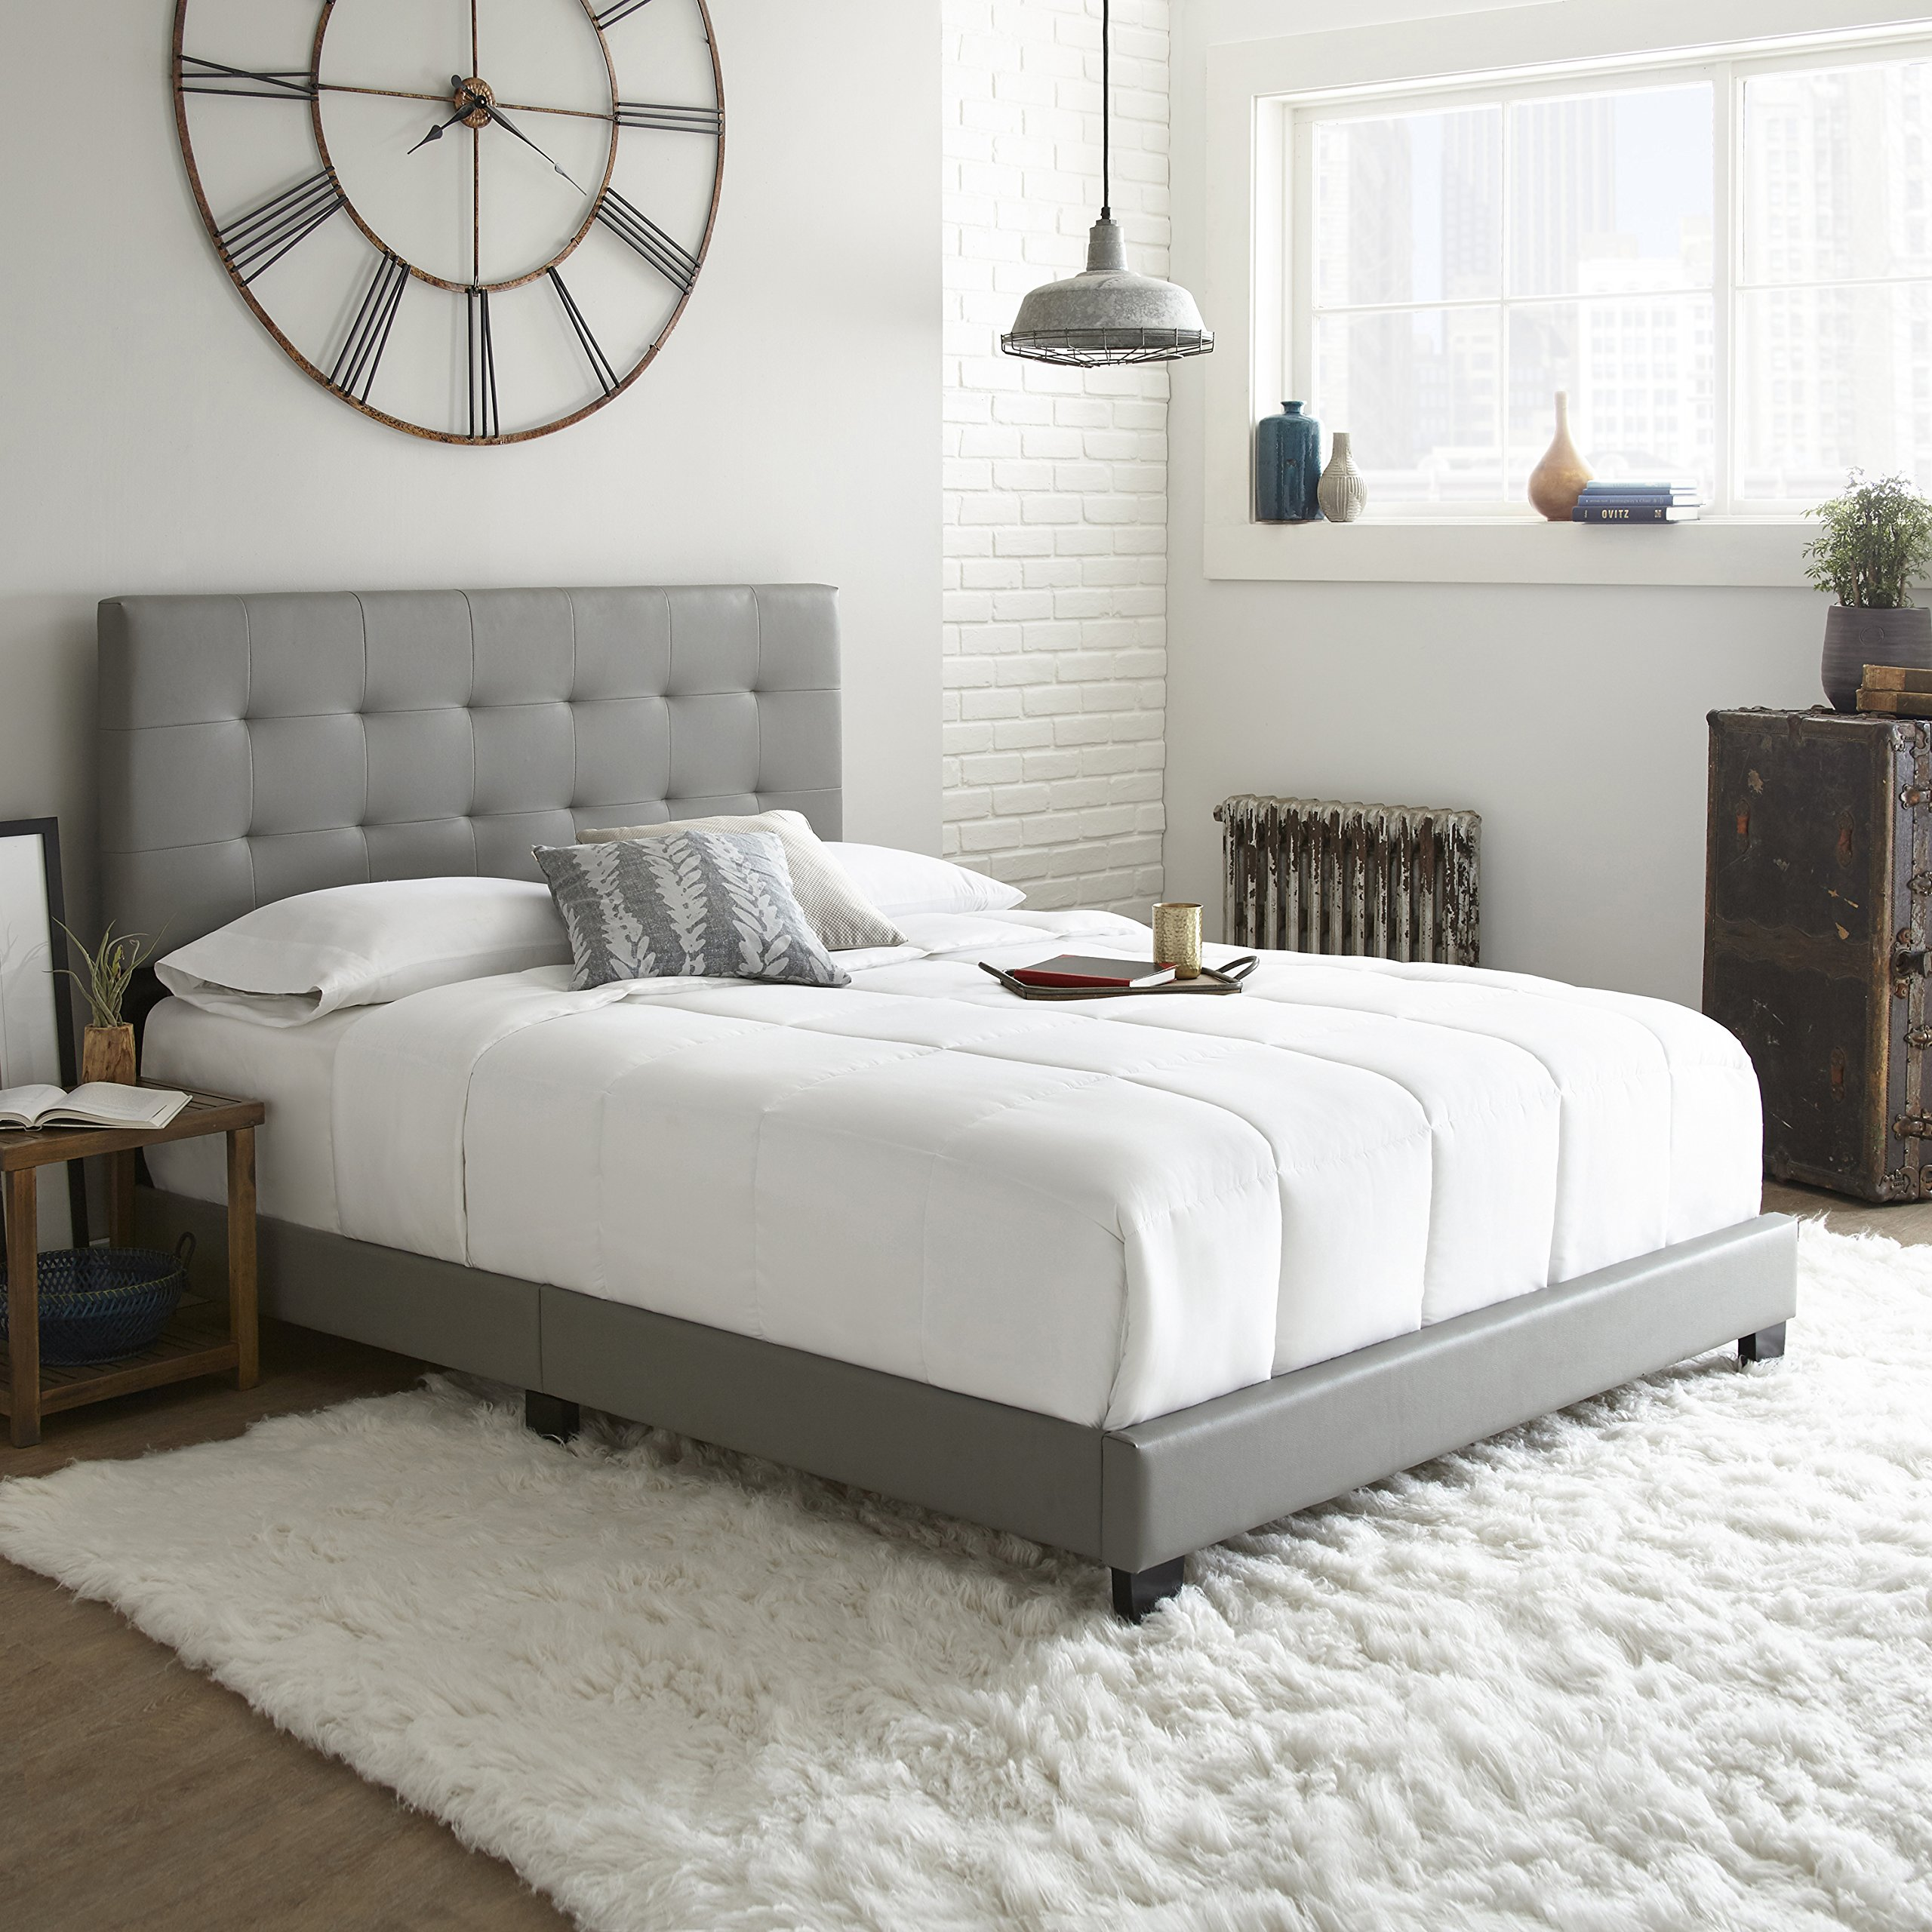 Flex Form Murphy Upholstered Platform Bed Frame with Tufted Headboard: Faux Leather, Grey, Queen by Flex Form (Image #2)